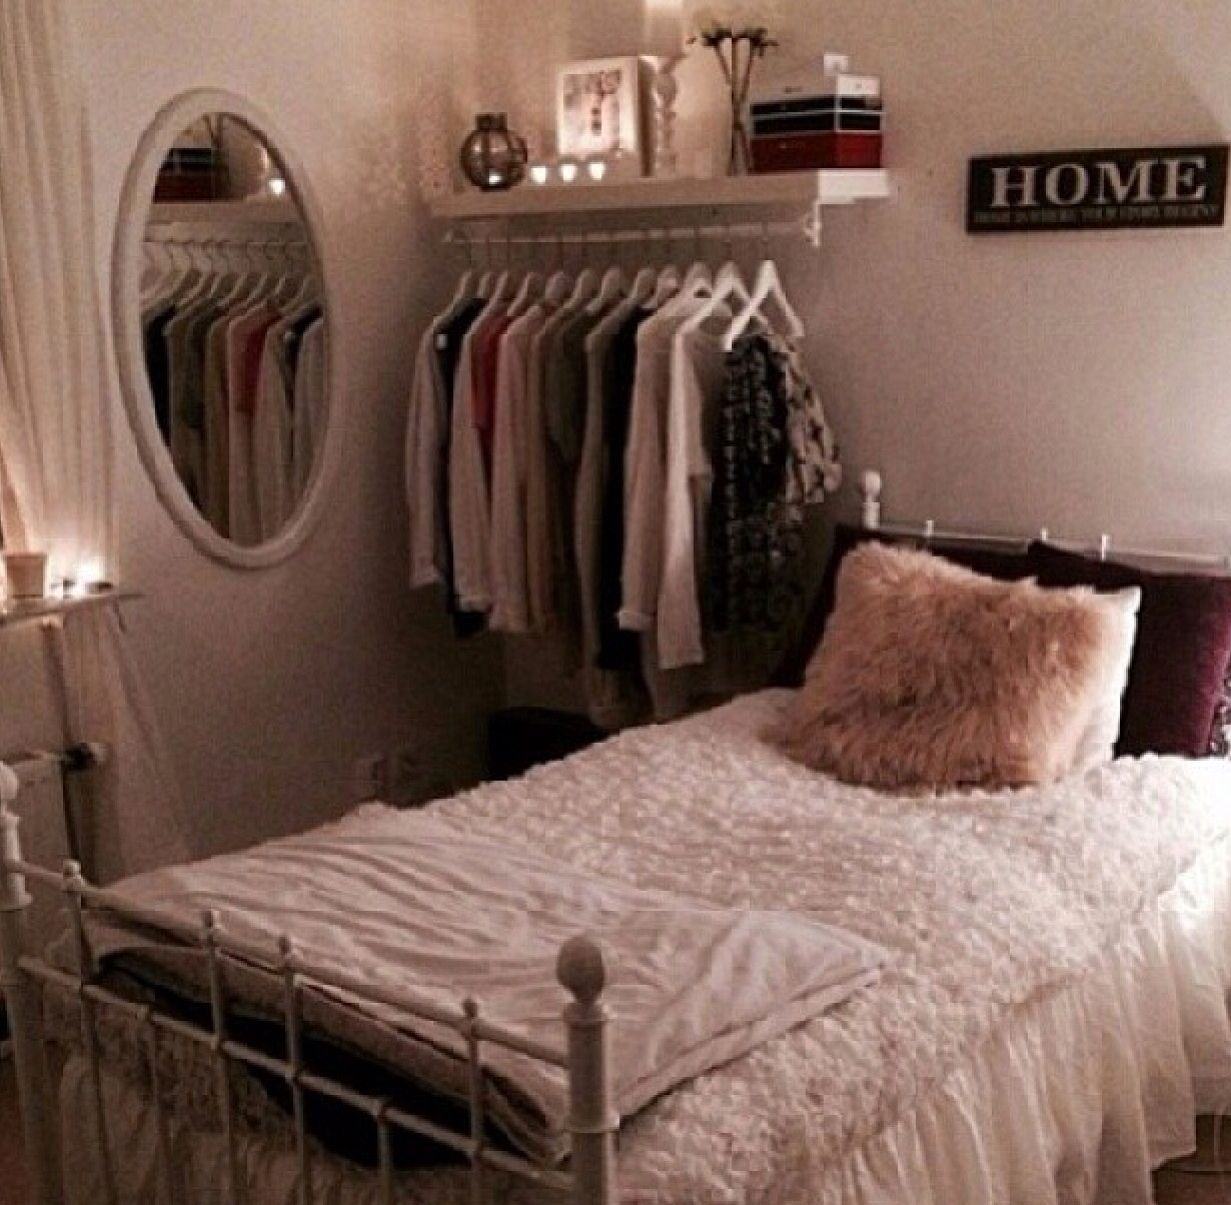 Pin By L A U R E N H O S I E R On Room Ideas Apartment Bedroom Decor Urban Outfitters Room Small Bedroom